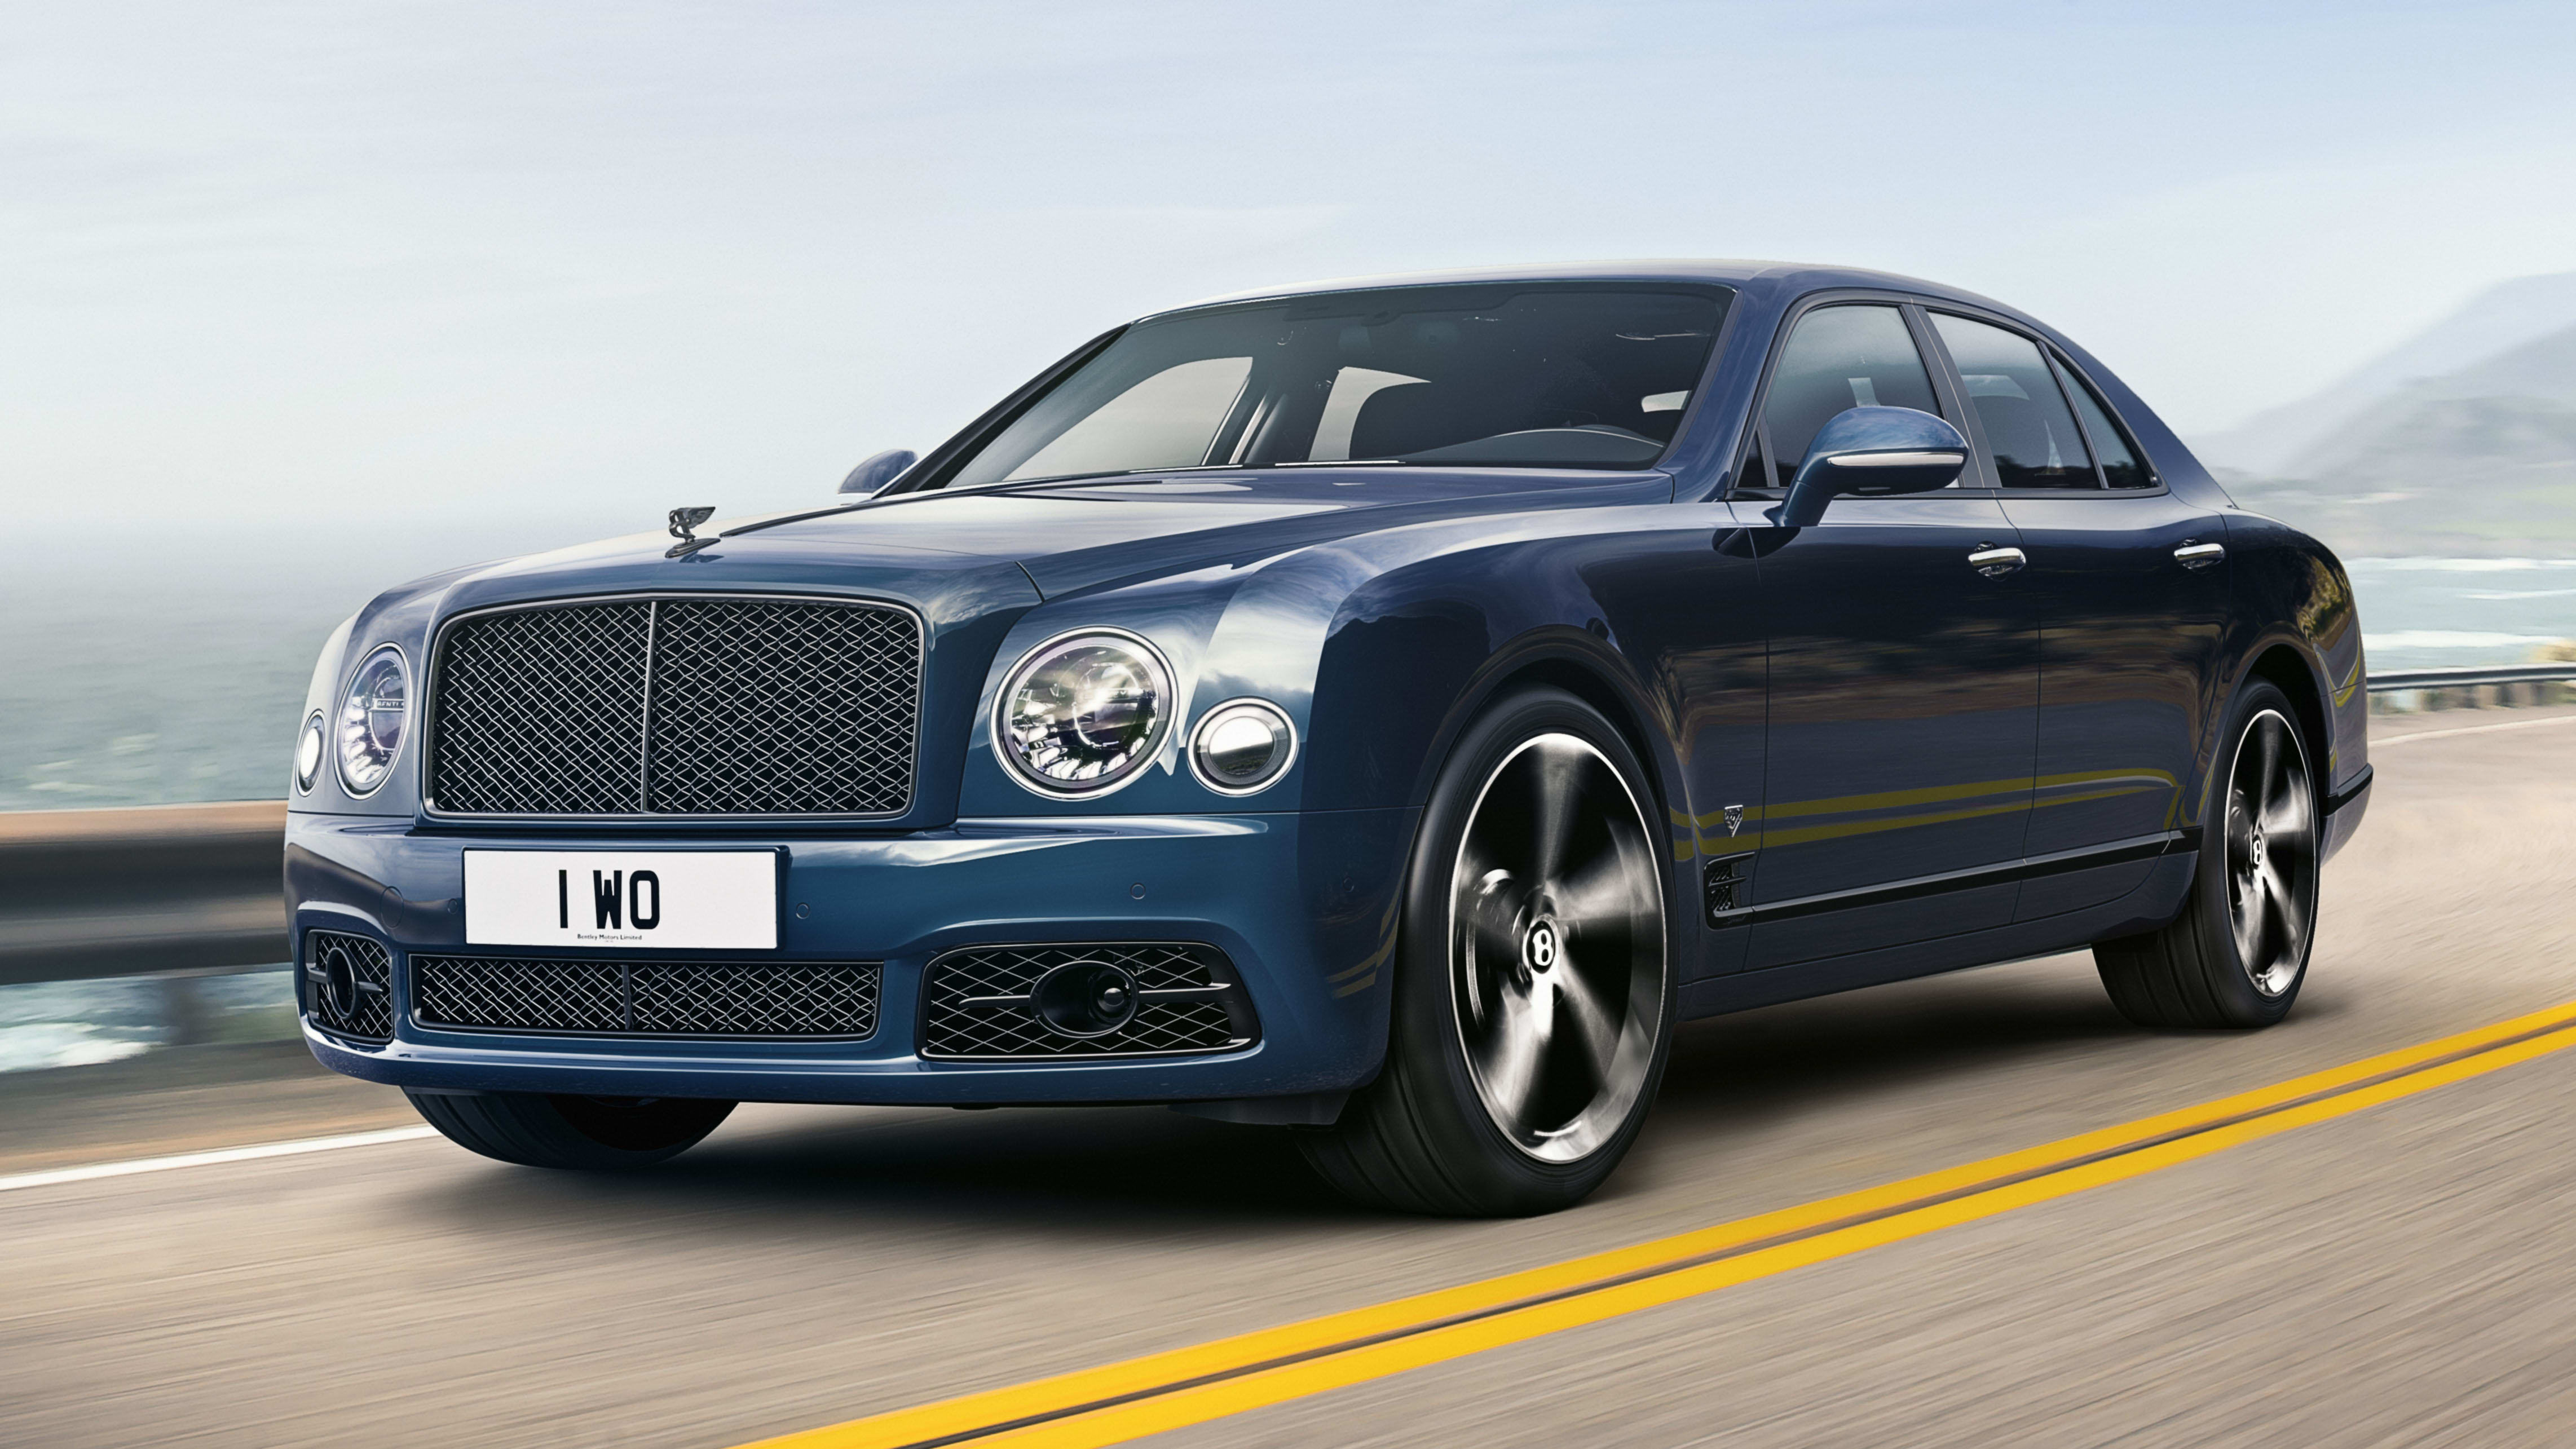 2020 Bentley Mulsanne 6 75 Edition Marks The End Of The Line Caradvice